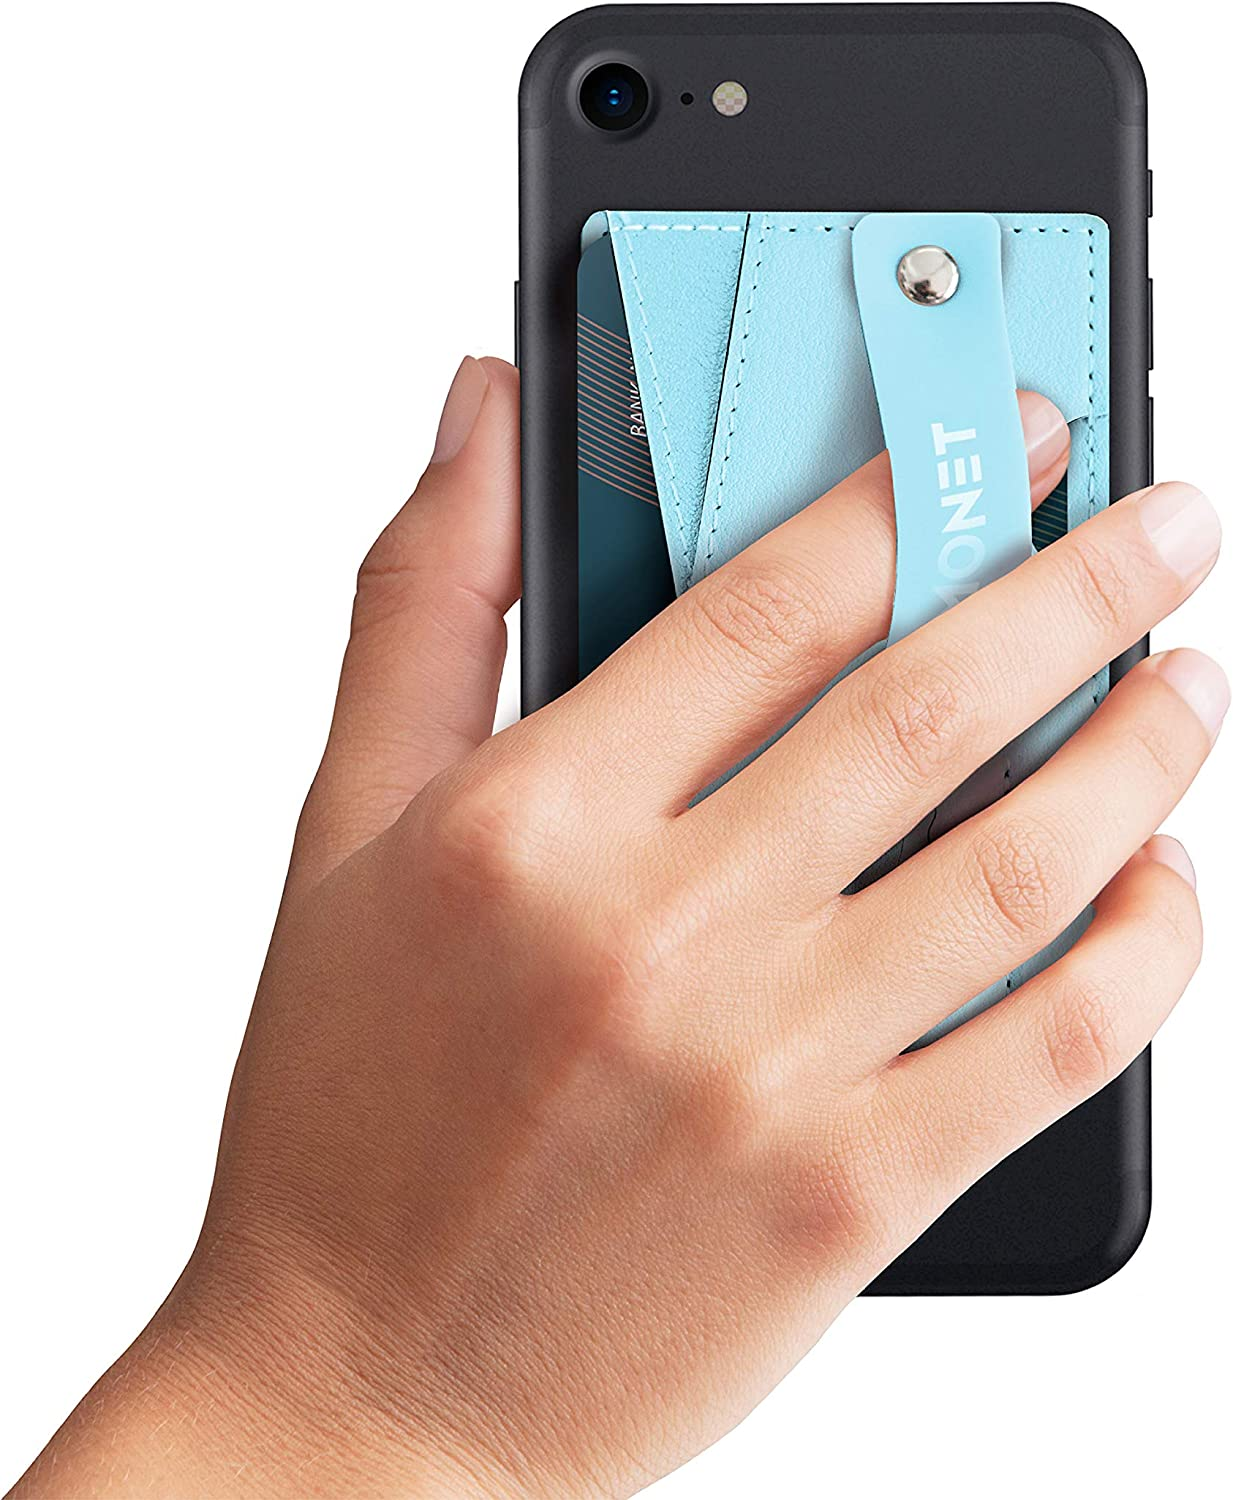 Monet Slim Wallet with Expanding Stand and Selling rankings for Grip trend rank Smartphones